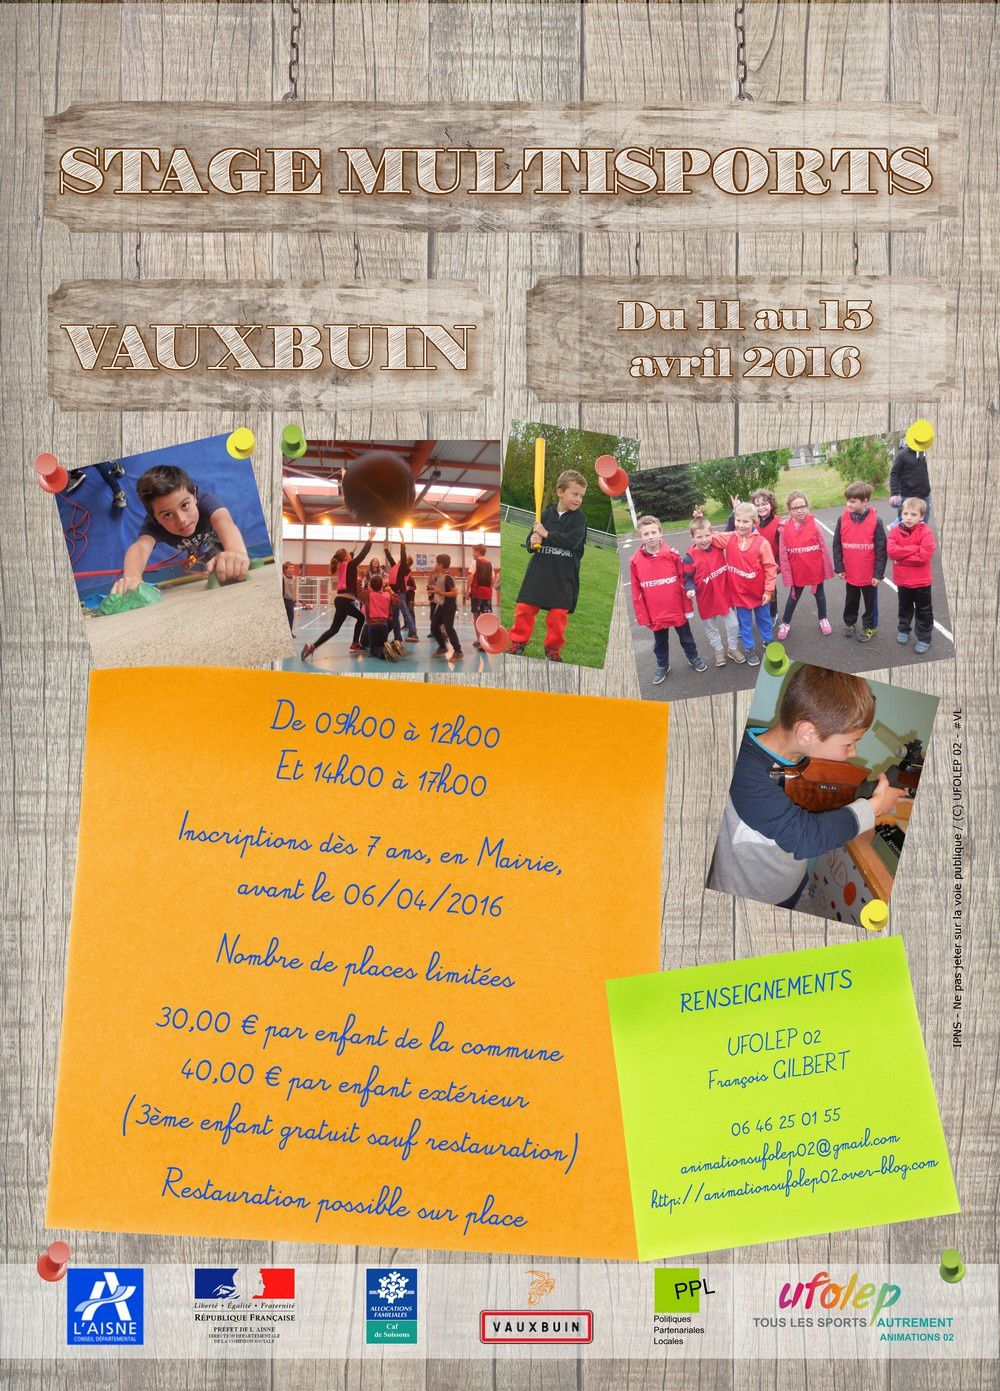 Stage multisport de VAUXBUIN - Avril 2016